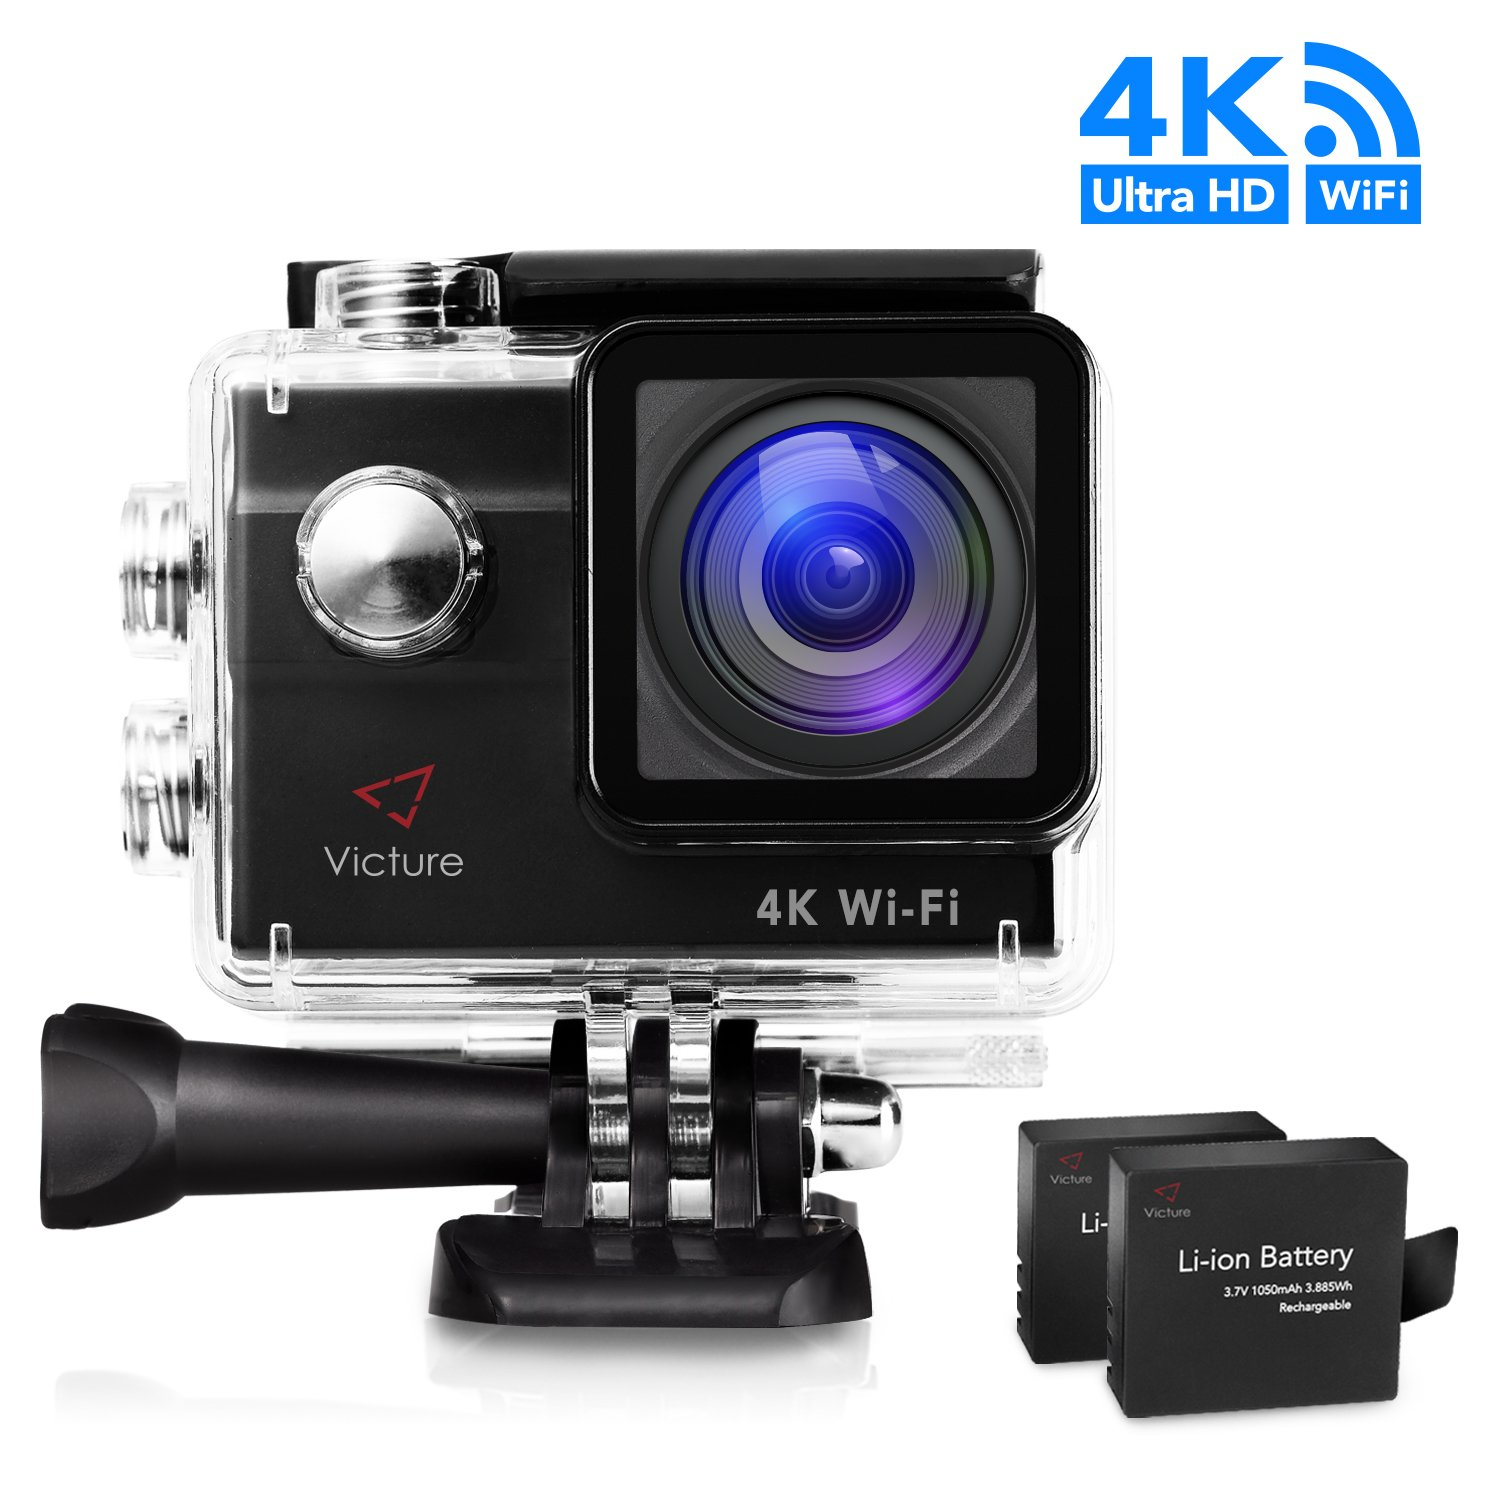 victure underwater action camera 4k wifi ultra hd 20mp. Black Bedroom Furniture Sets. Home Design Ideas